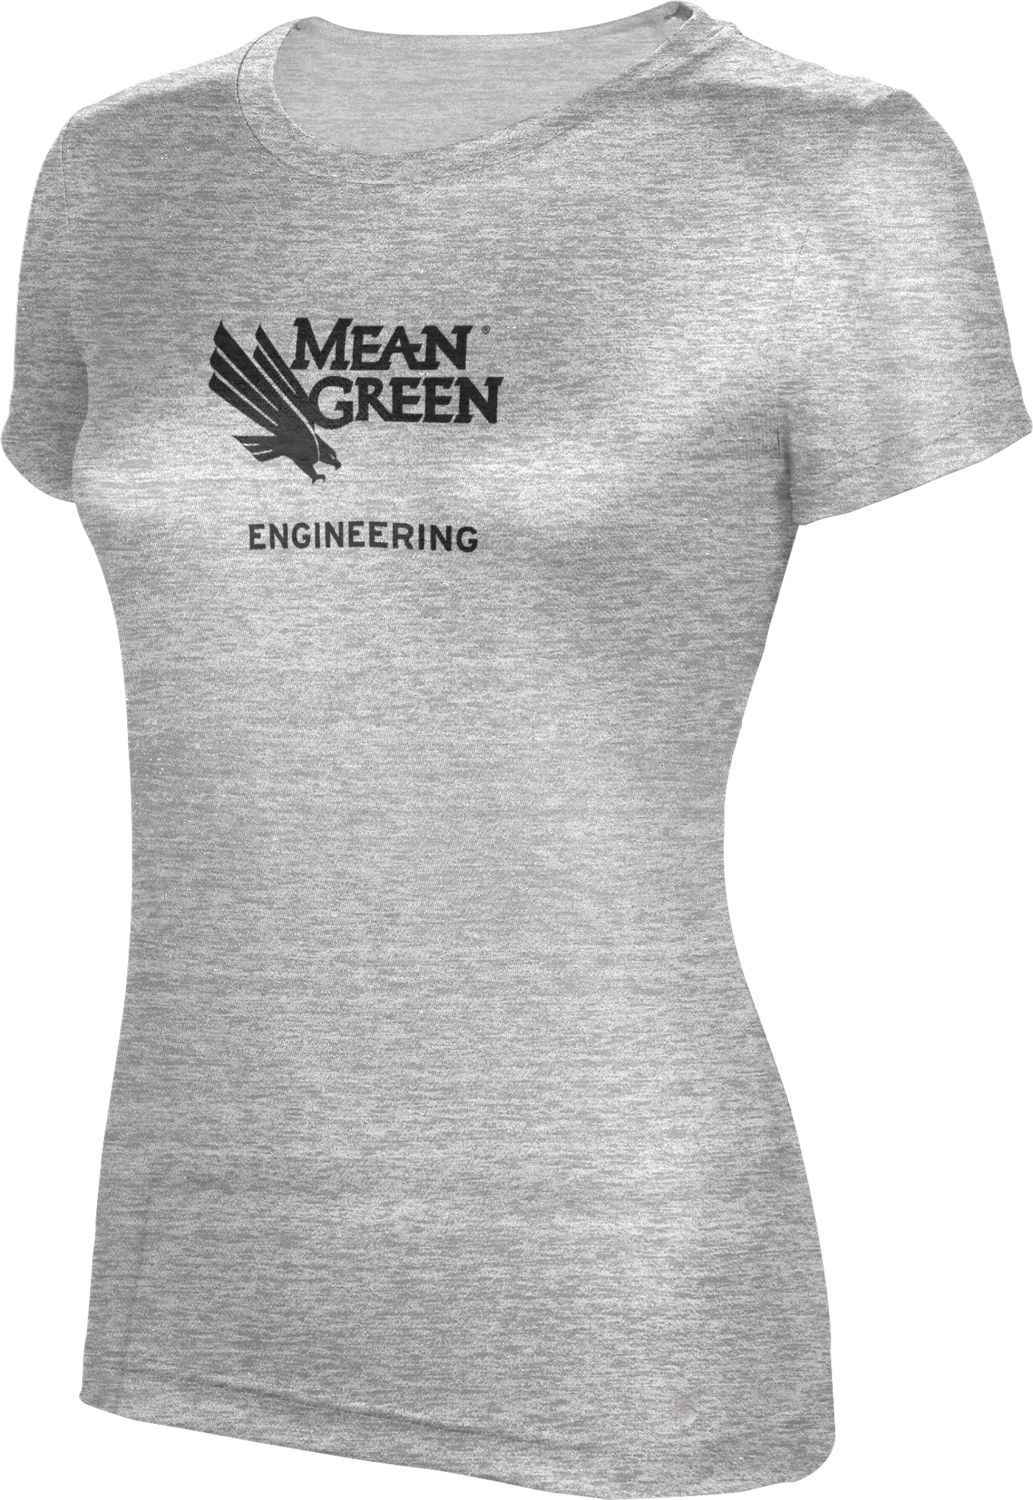 ProSphere Engineering Women's TriBlend Distressed Tee